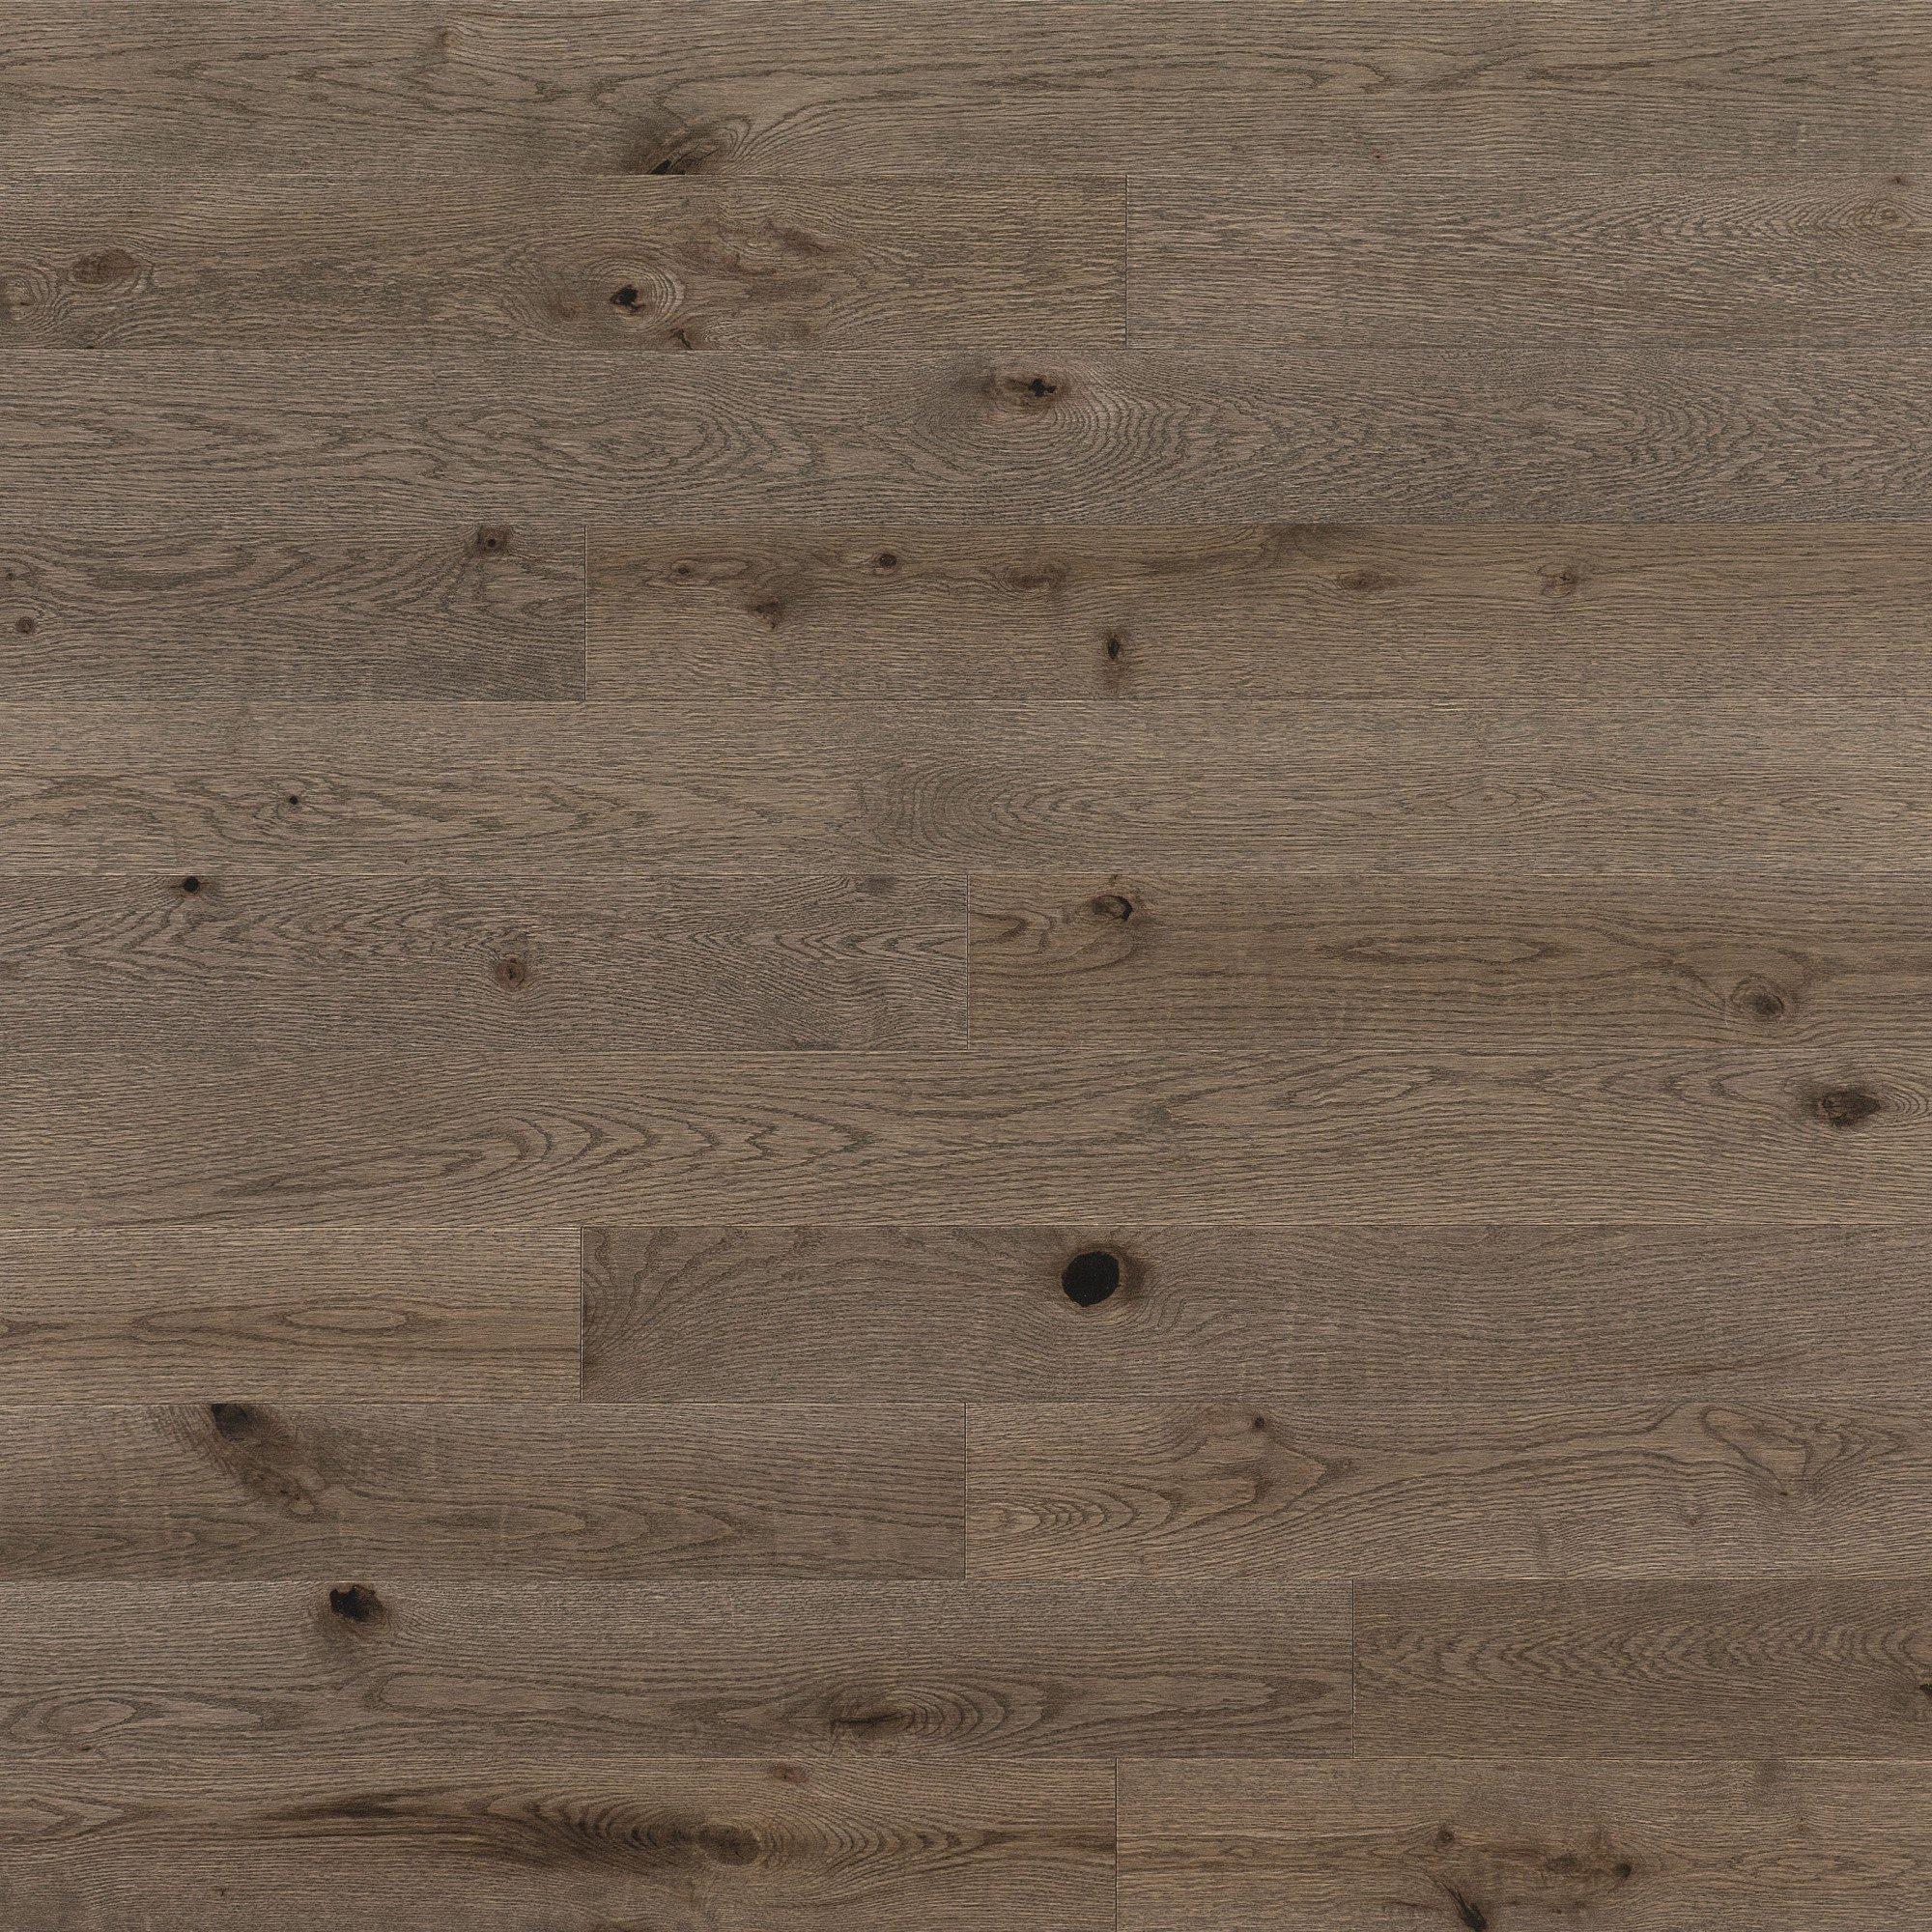 Red Oak Barn Wood Character - Floor image